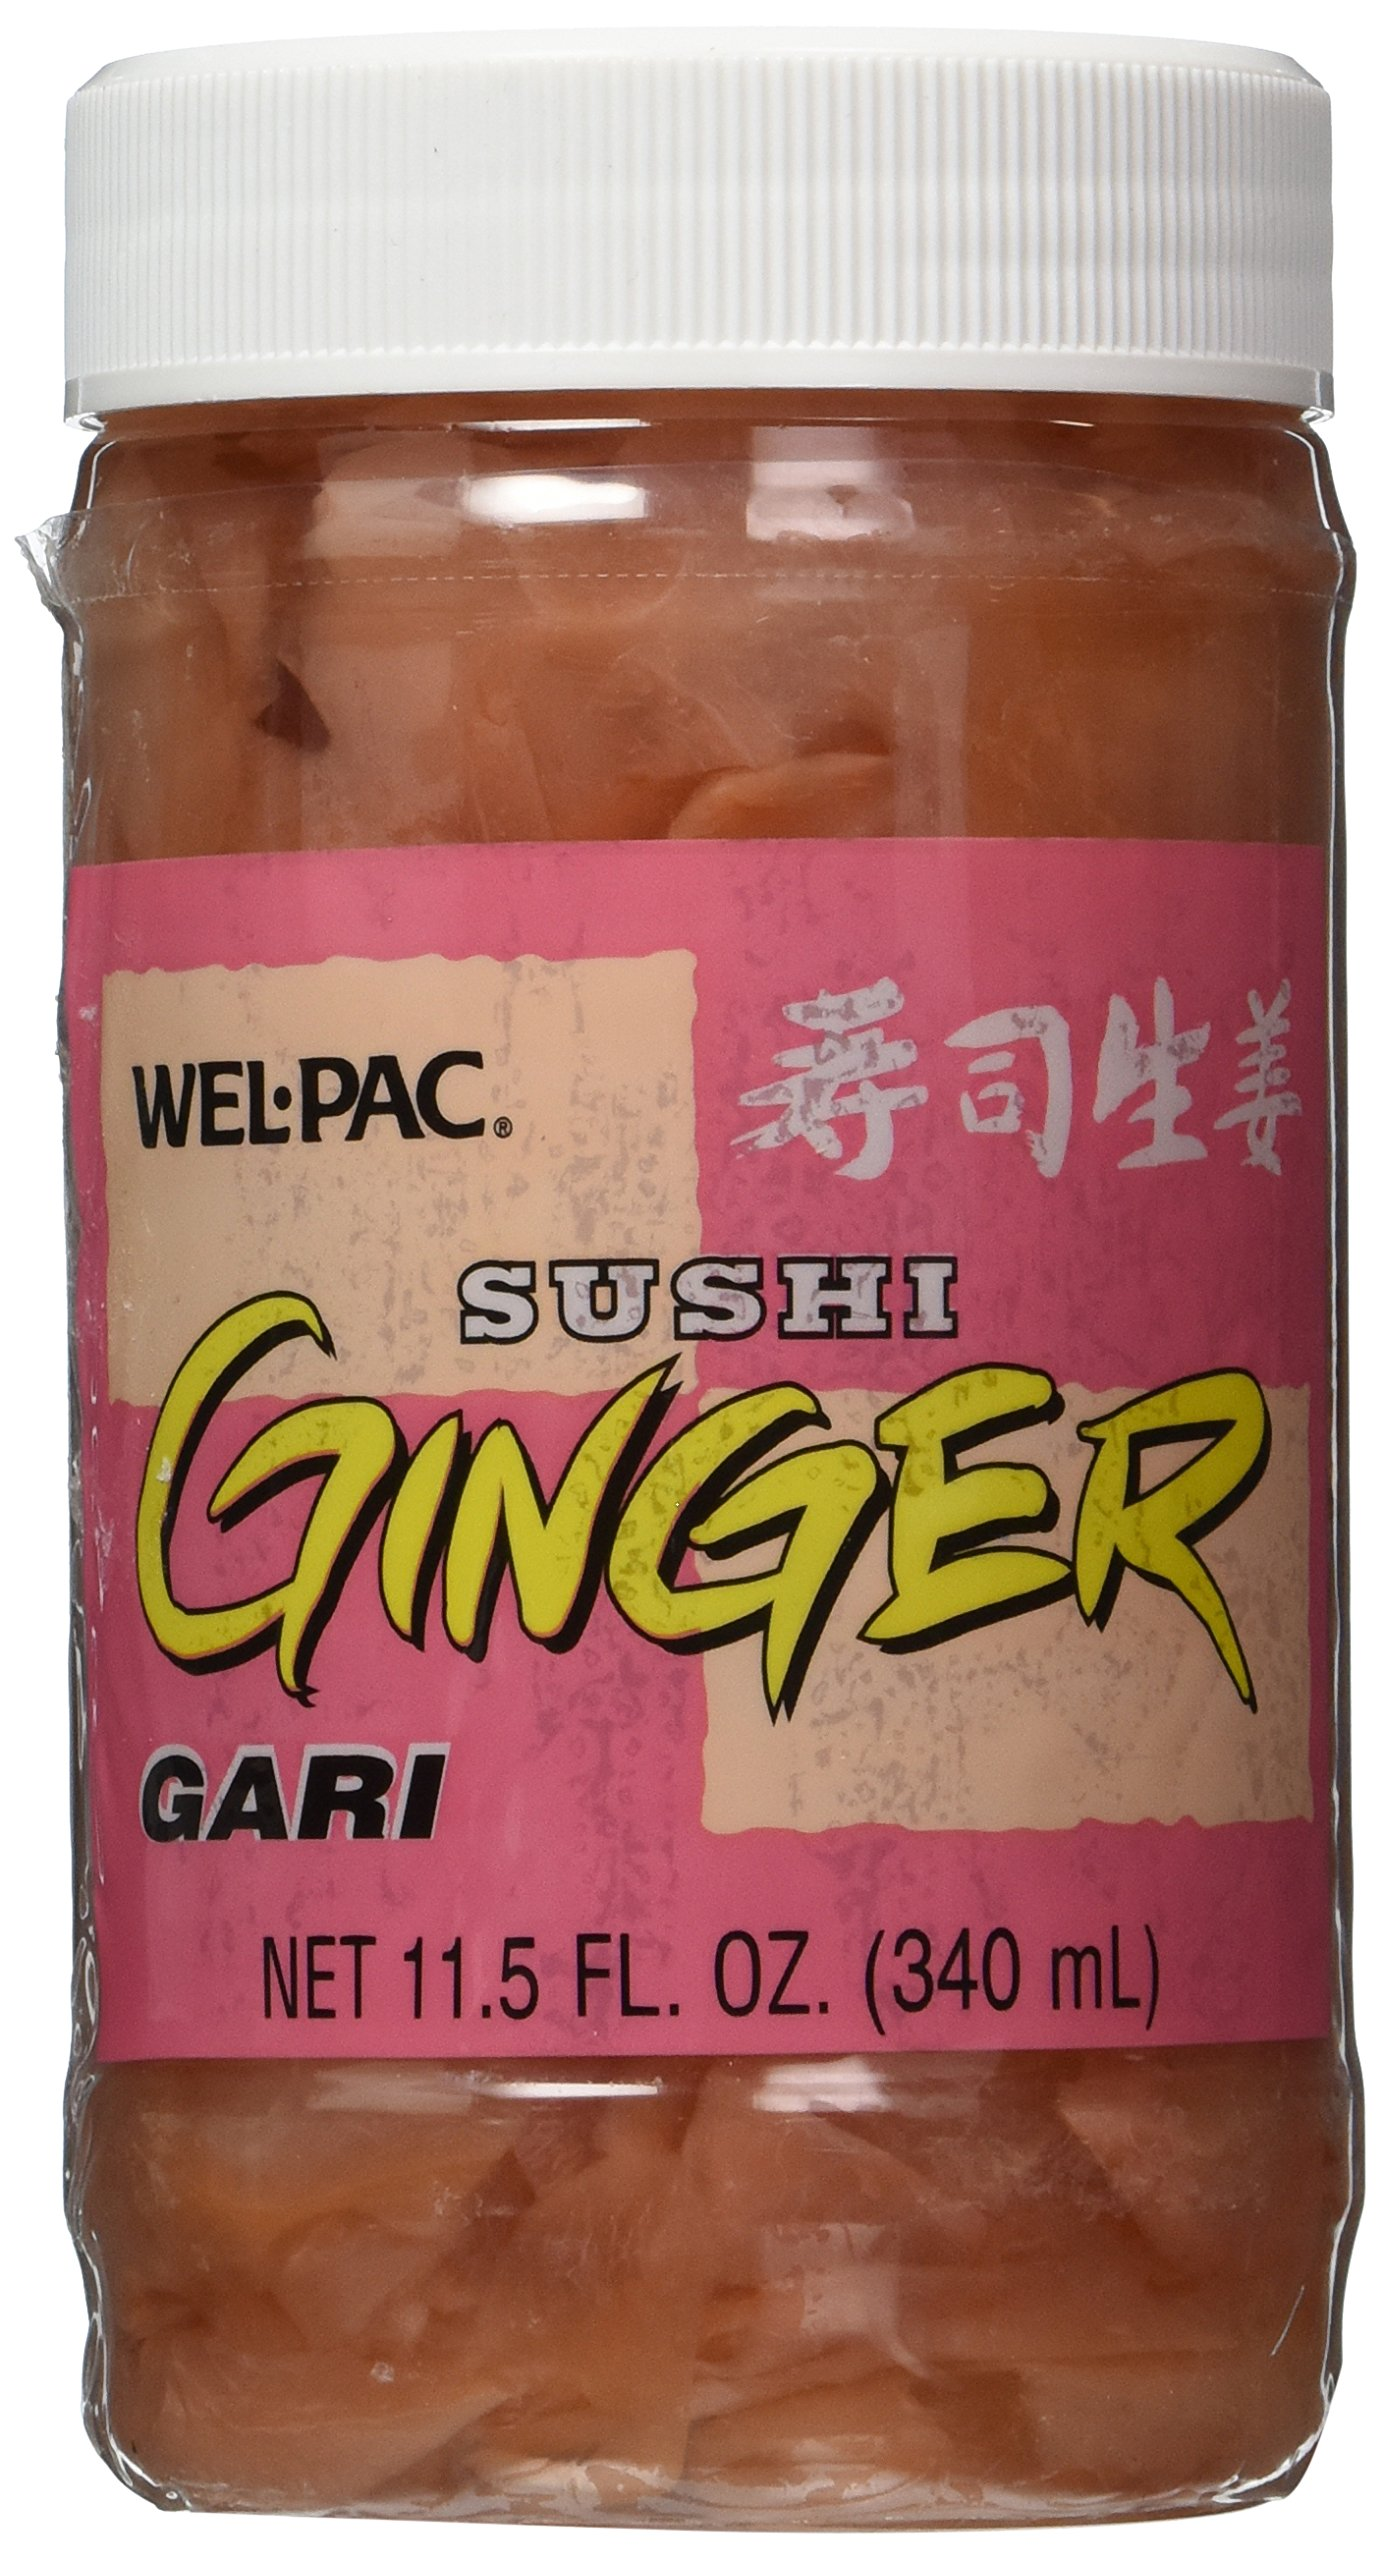 Sliced Pickled Ginger - Net Wt. 11.5 FL. OZ (340 ml)